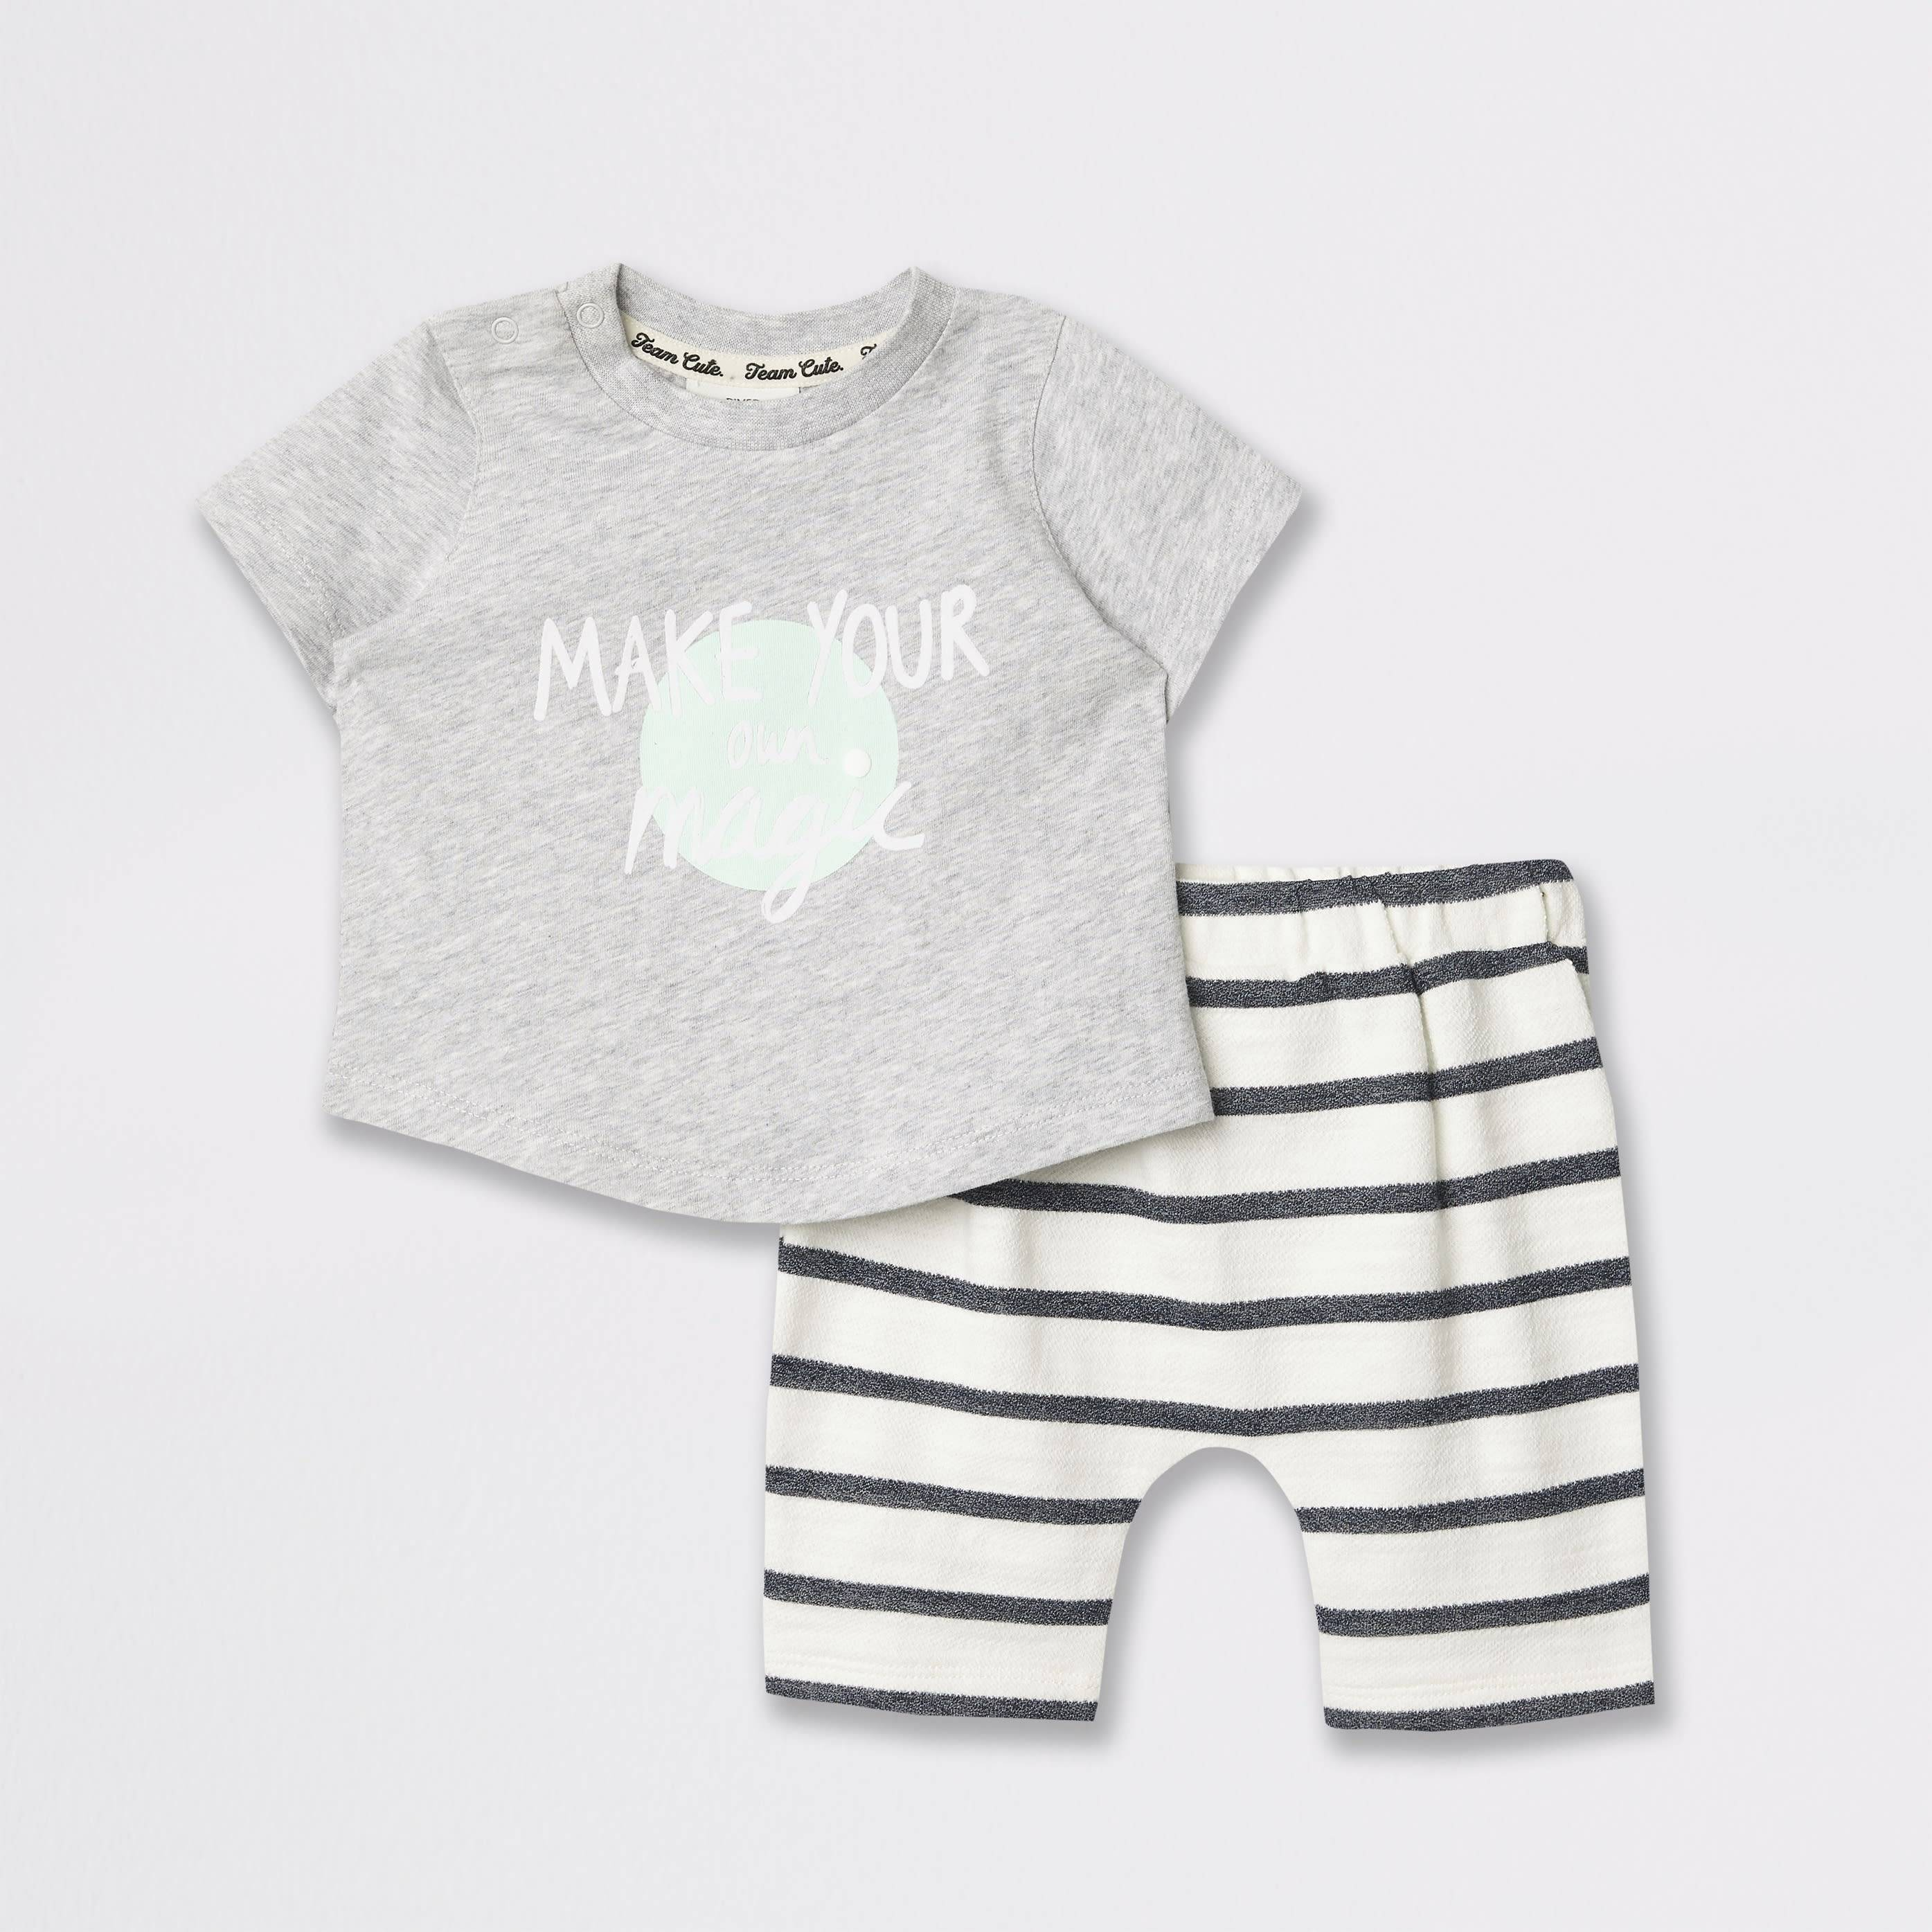 River Island Baby Grey graphic print T-shirt outfit (3-6 Mths)